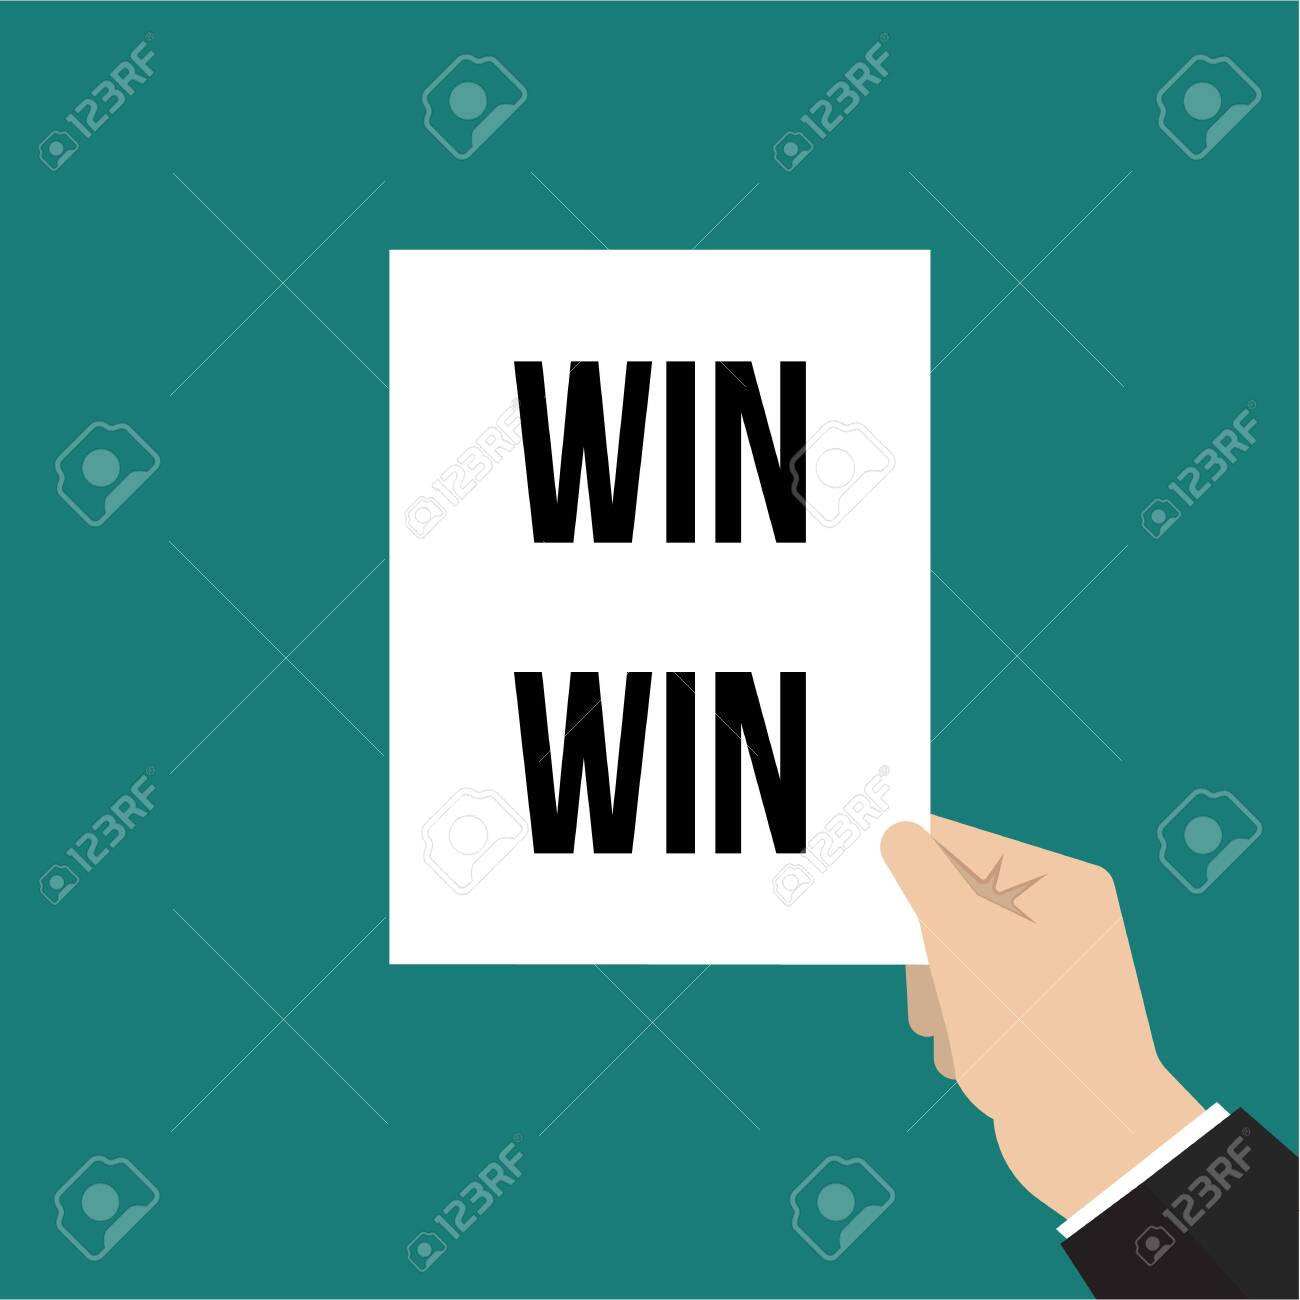 Man showing paper WIN WIN text. Vector illustration - 114670344